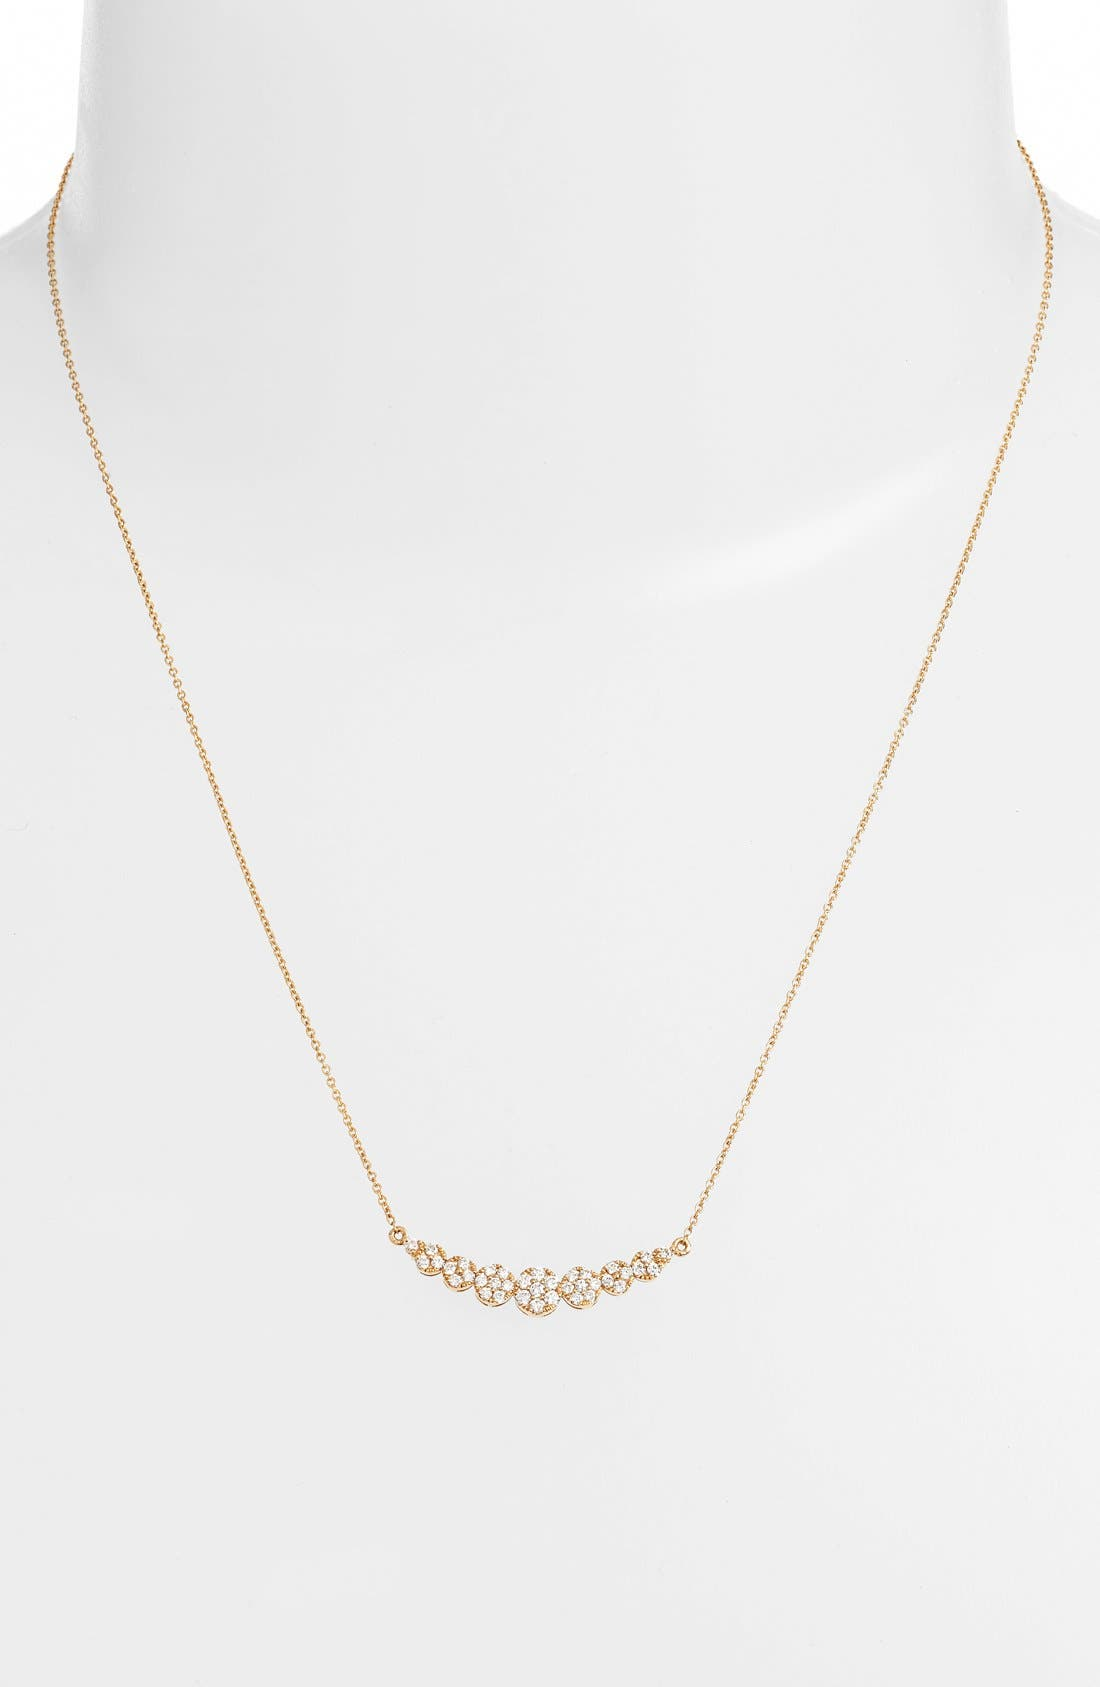 'Liora' Diamond Pendant Necklace,                             Alternate thumbnail 2, color,                             Yellow Gold